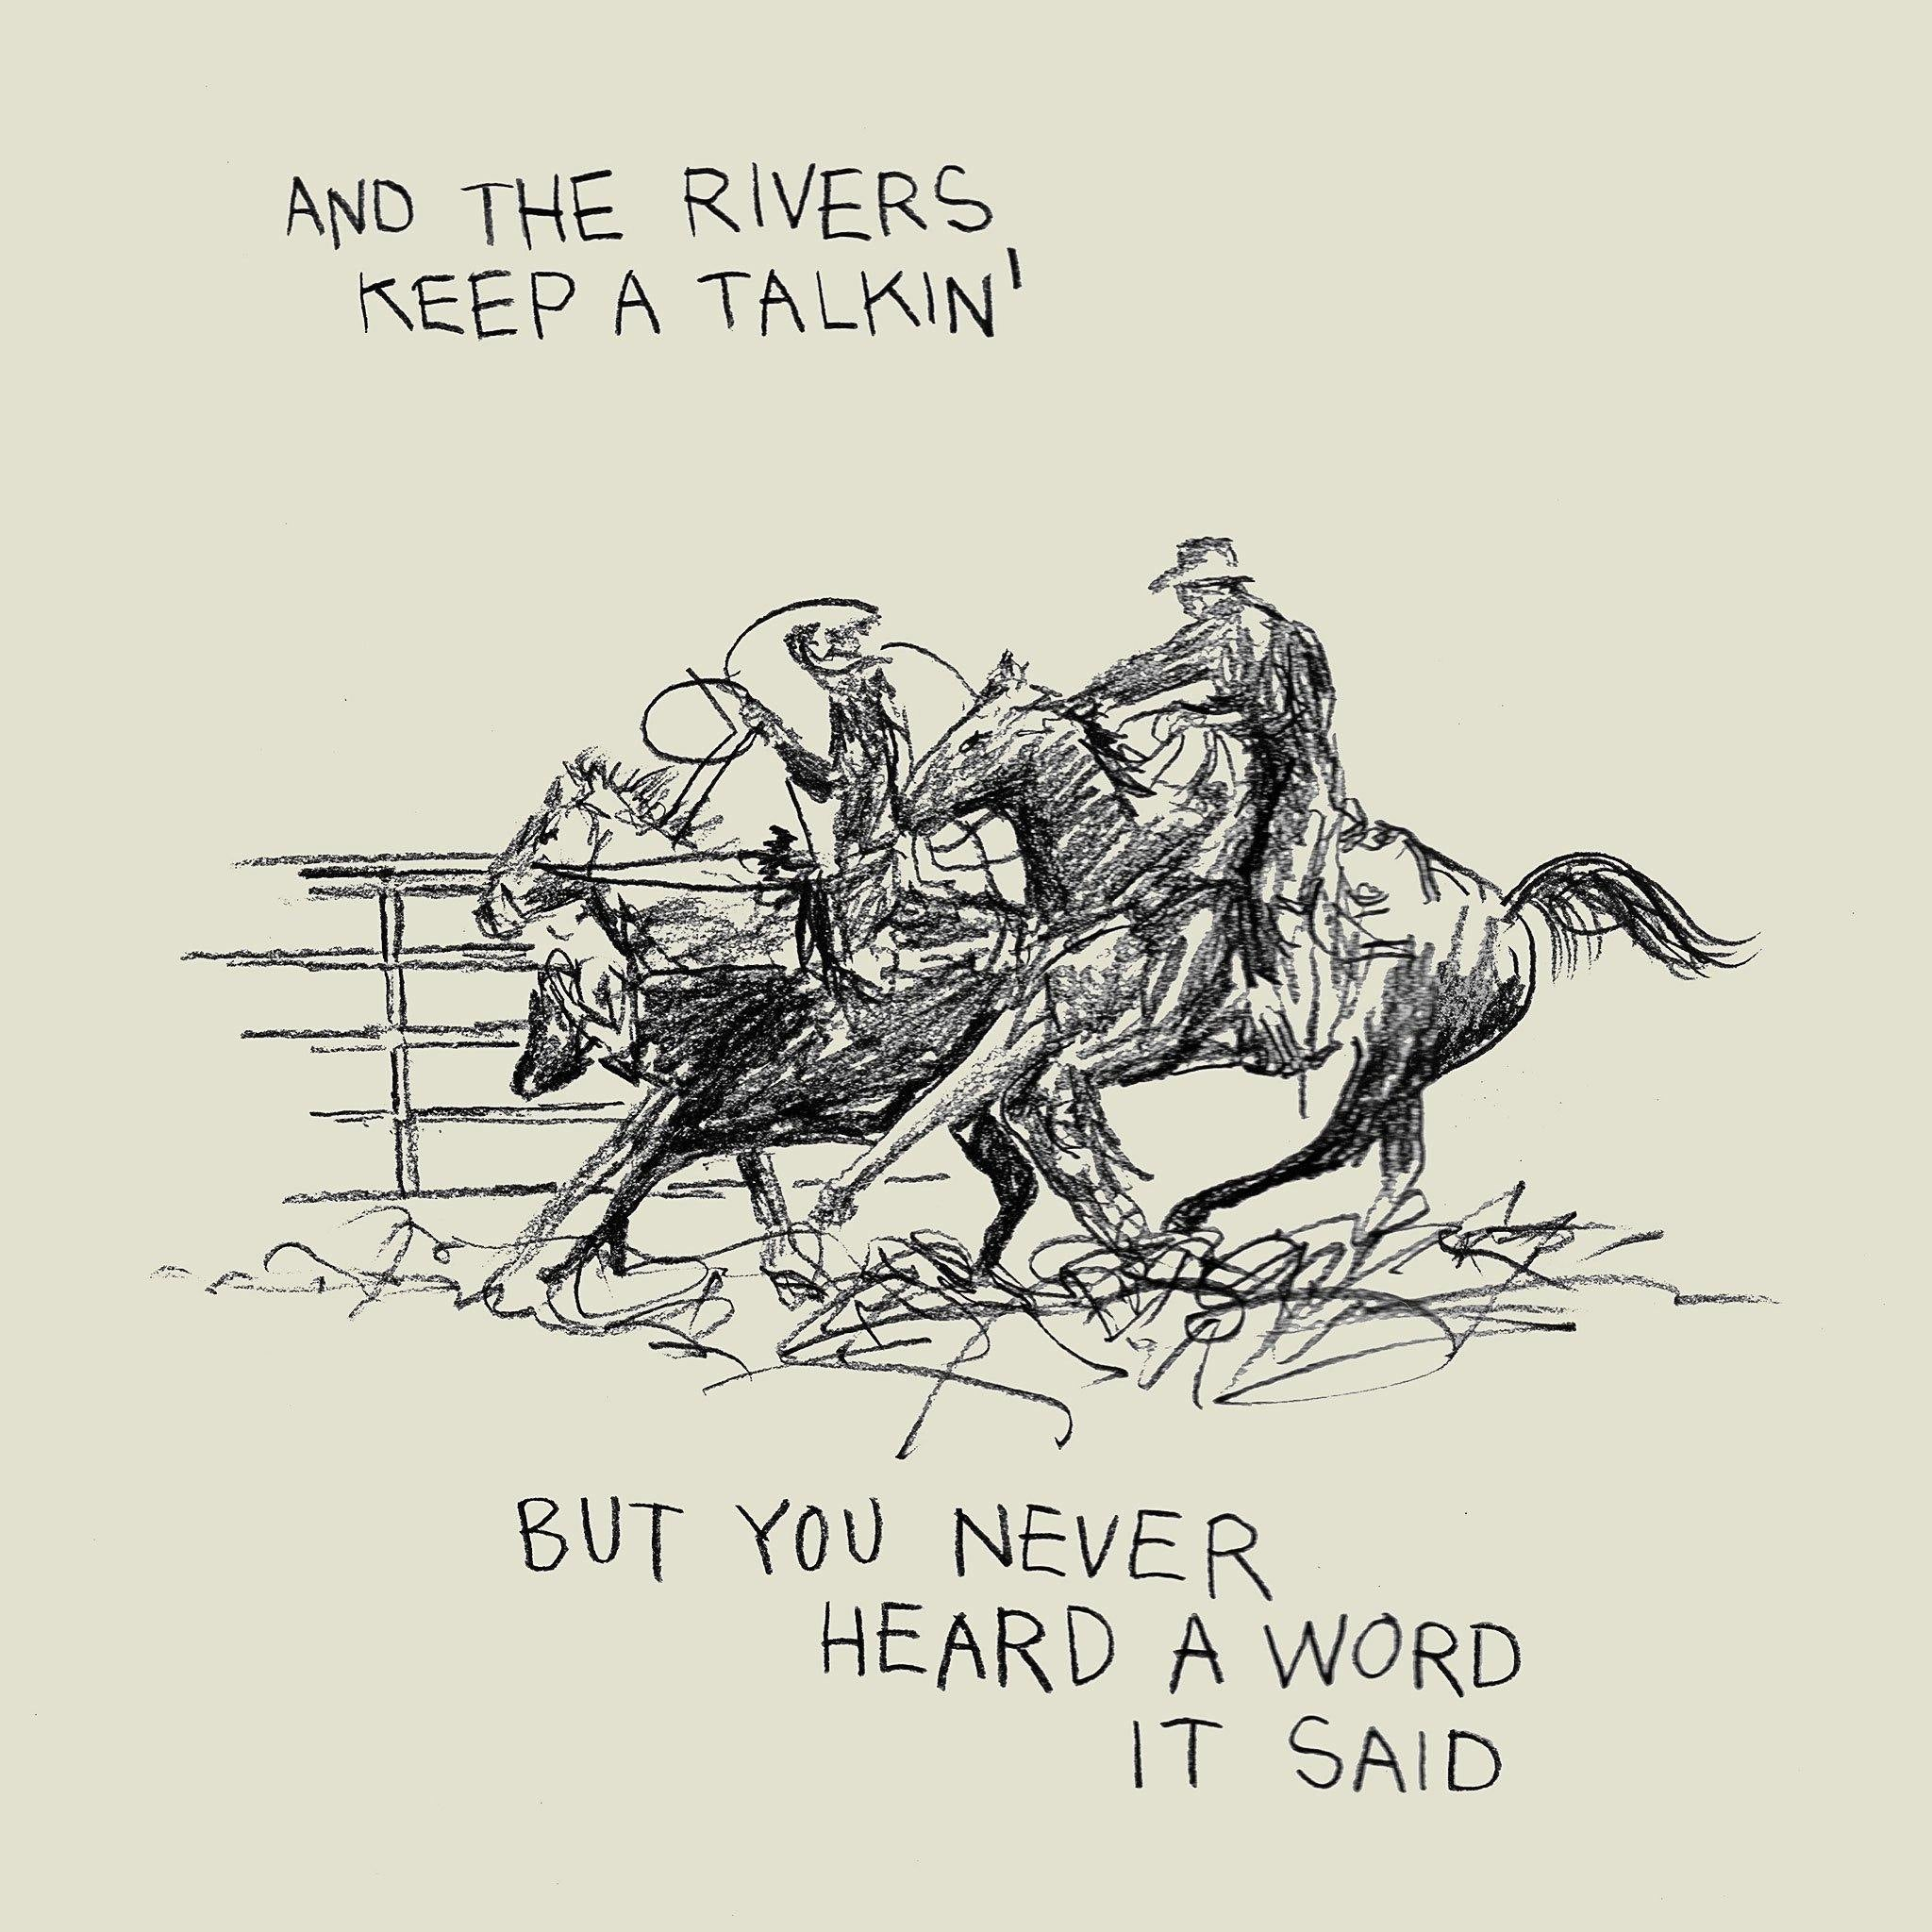 And The Rivers Keep A Talkin' But You Never Heard A Word It Said